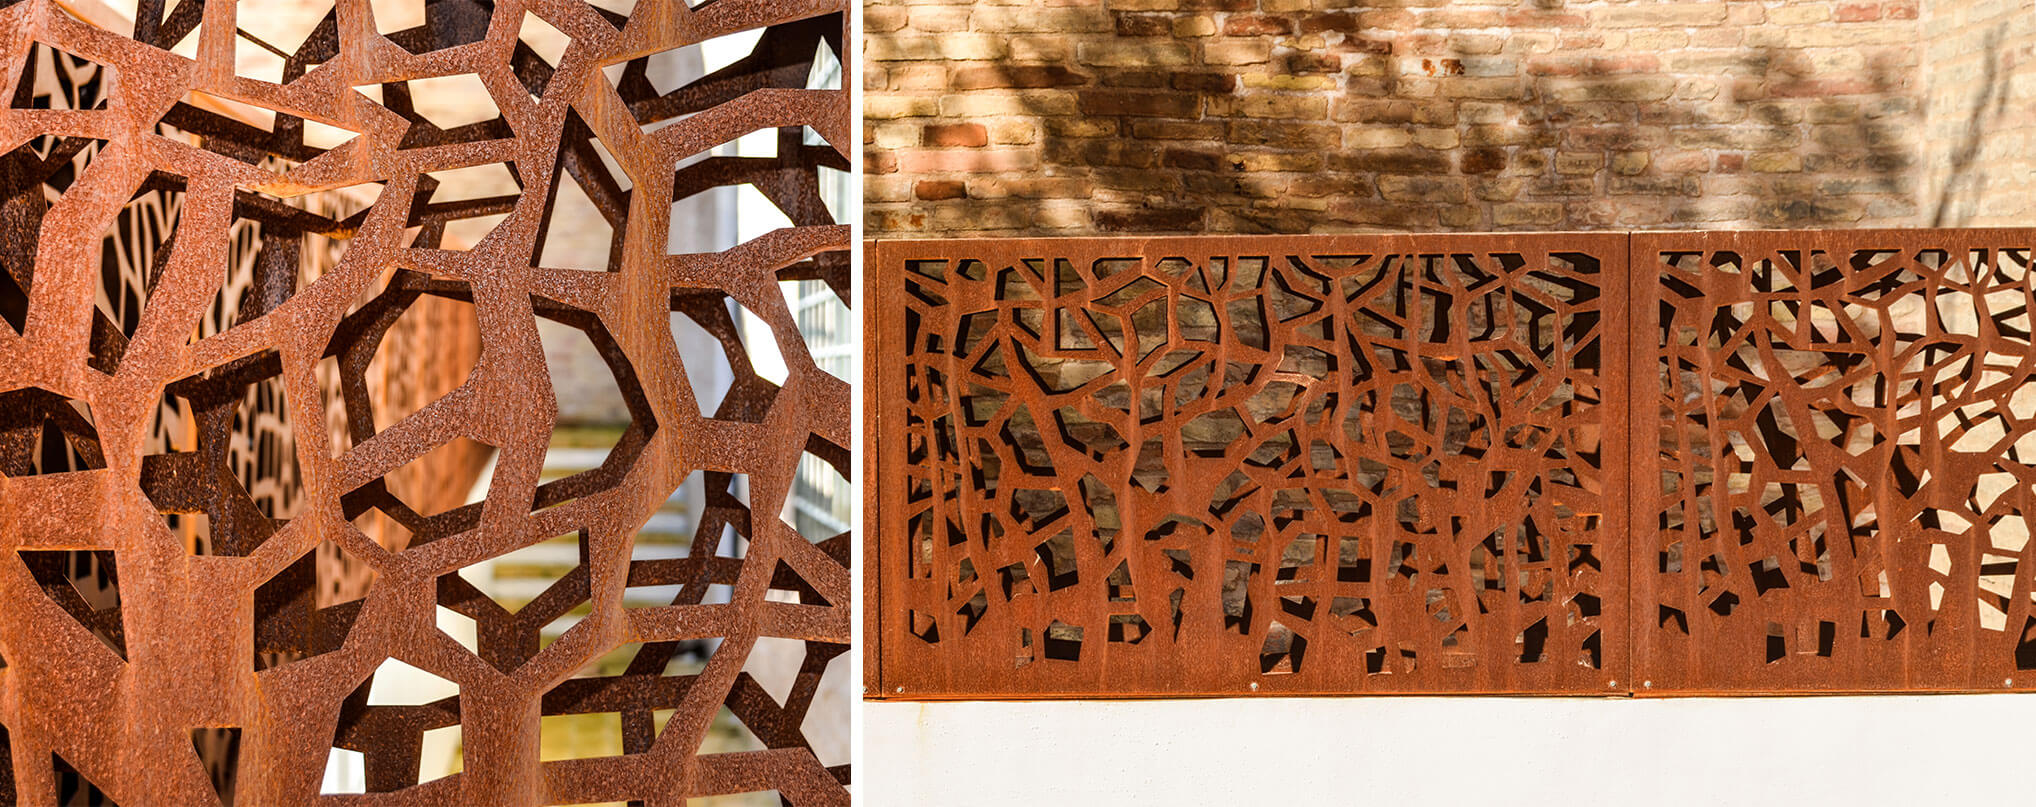 laser engraved steel railing and corten borders